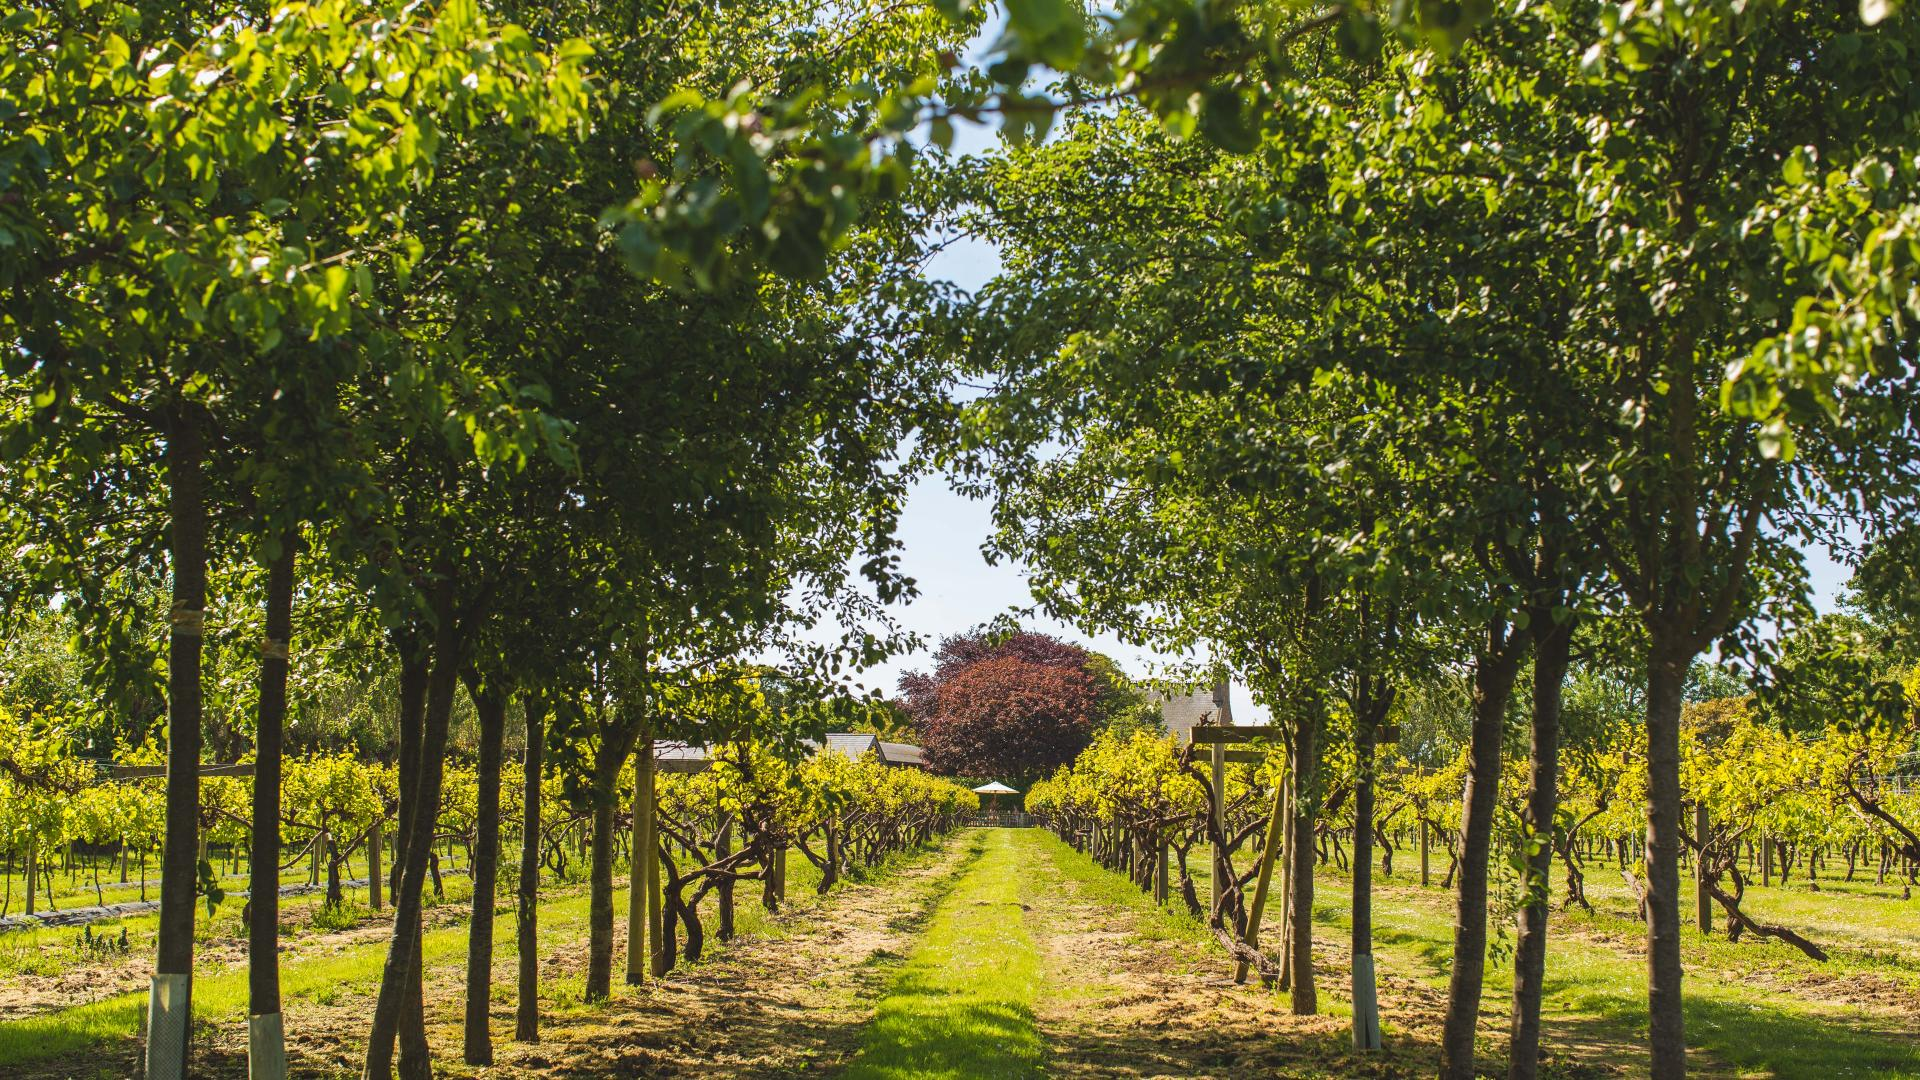 Things to do in Jersey: the vineyard at La Mare